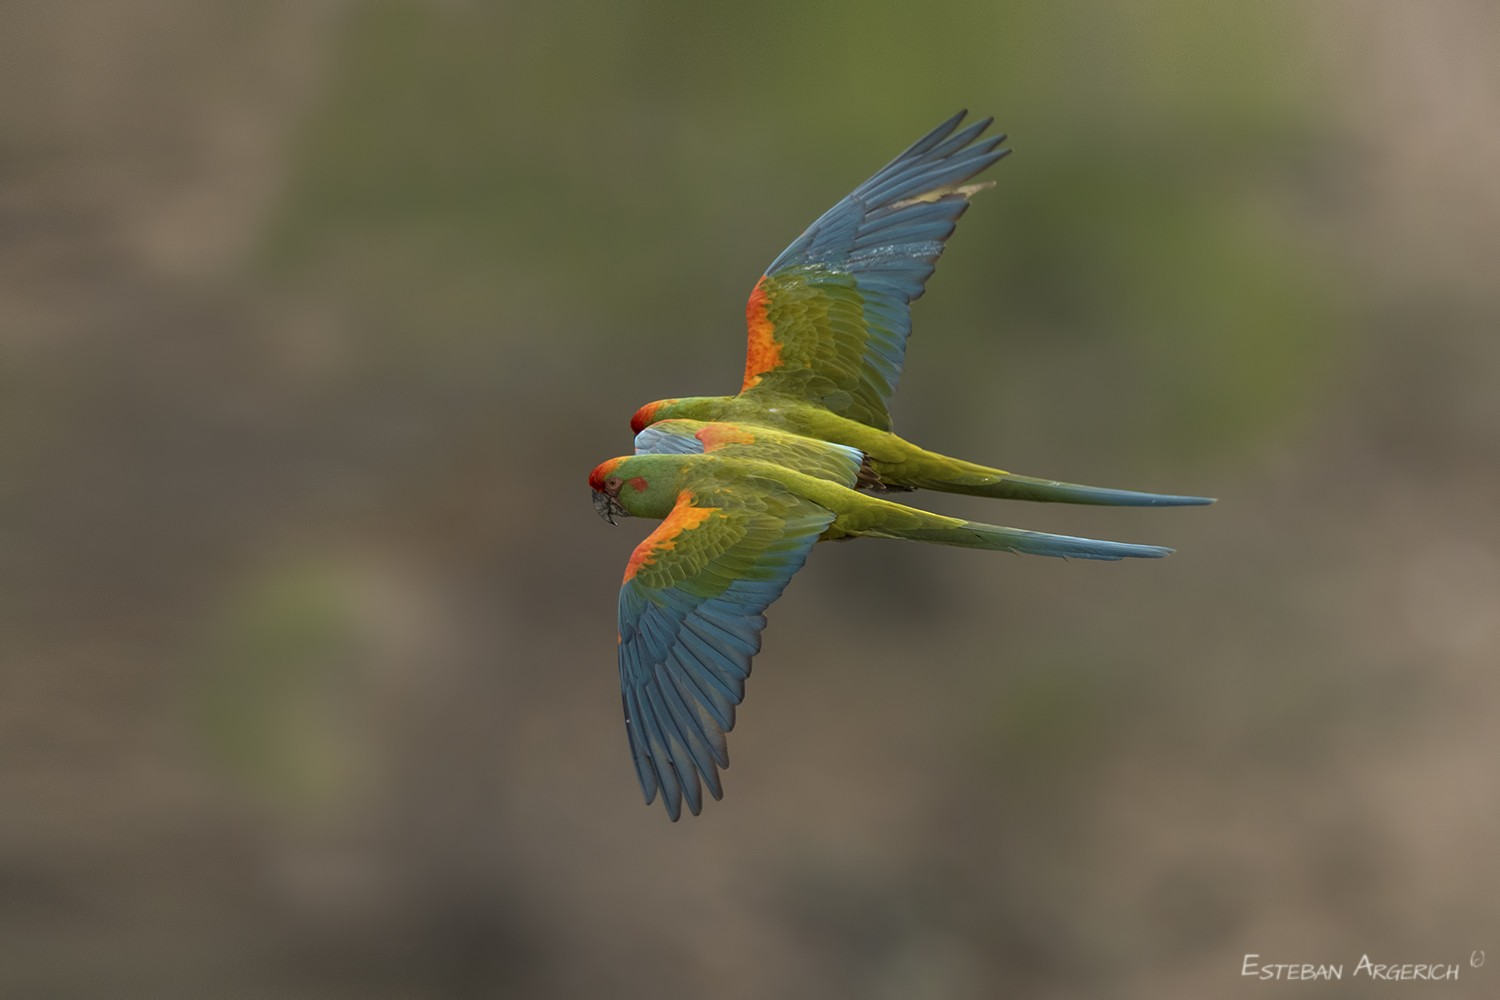 Red-fronted Macaw - Esteban Argerich